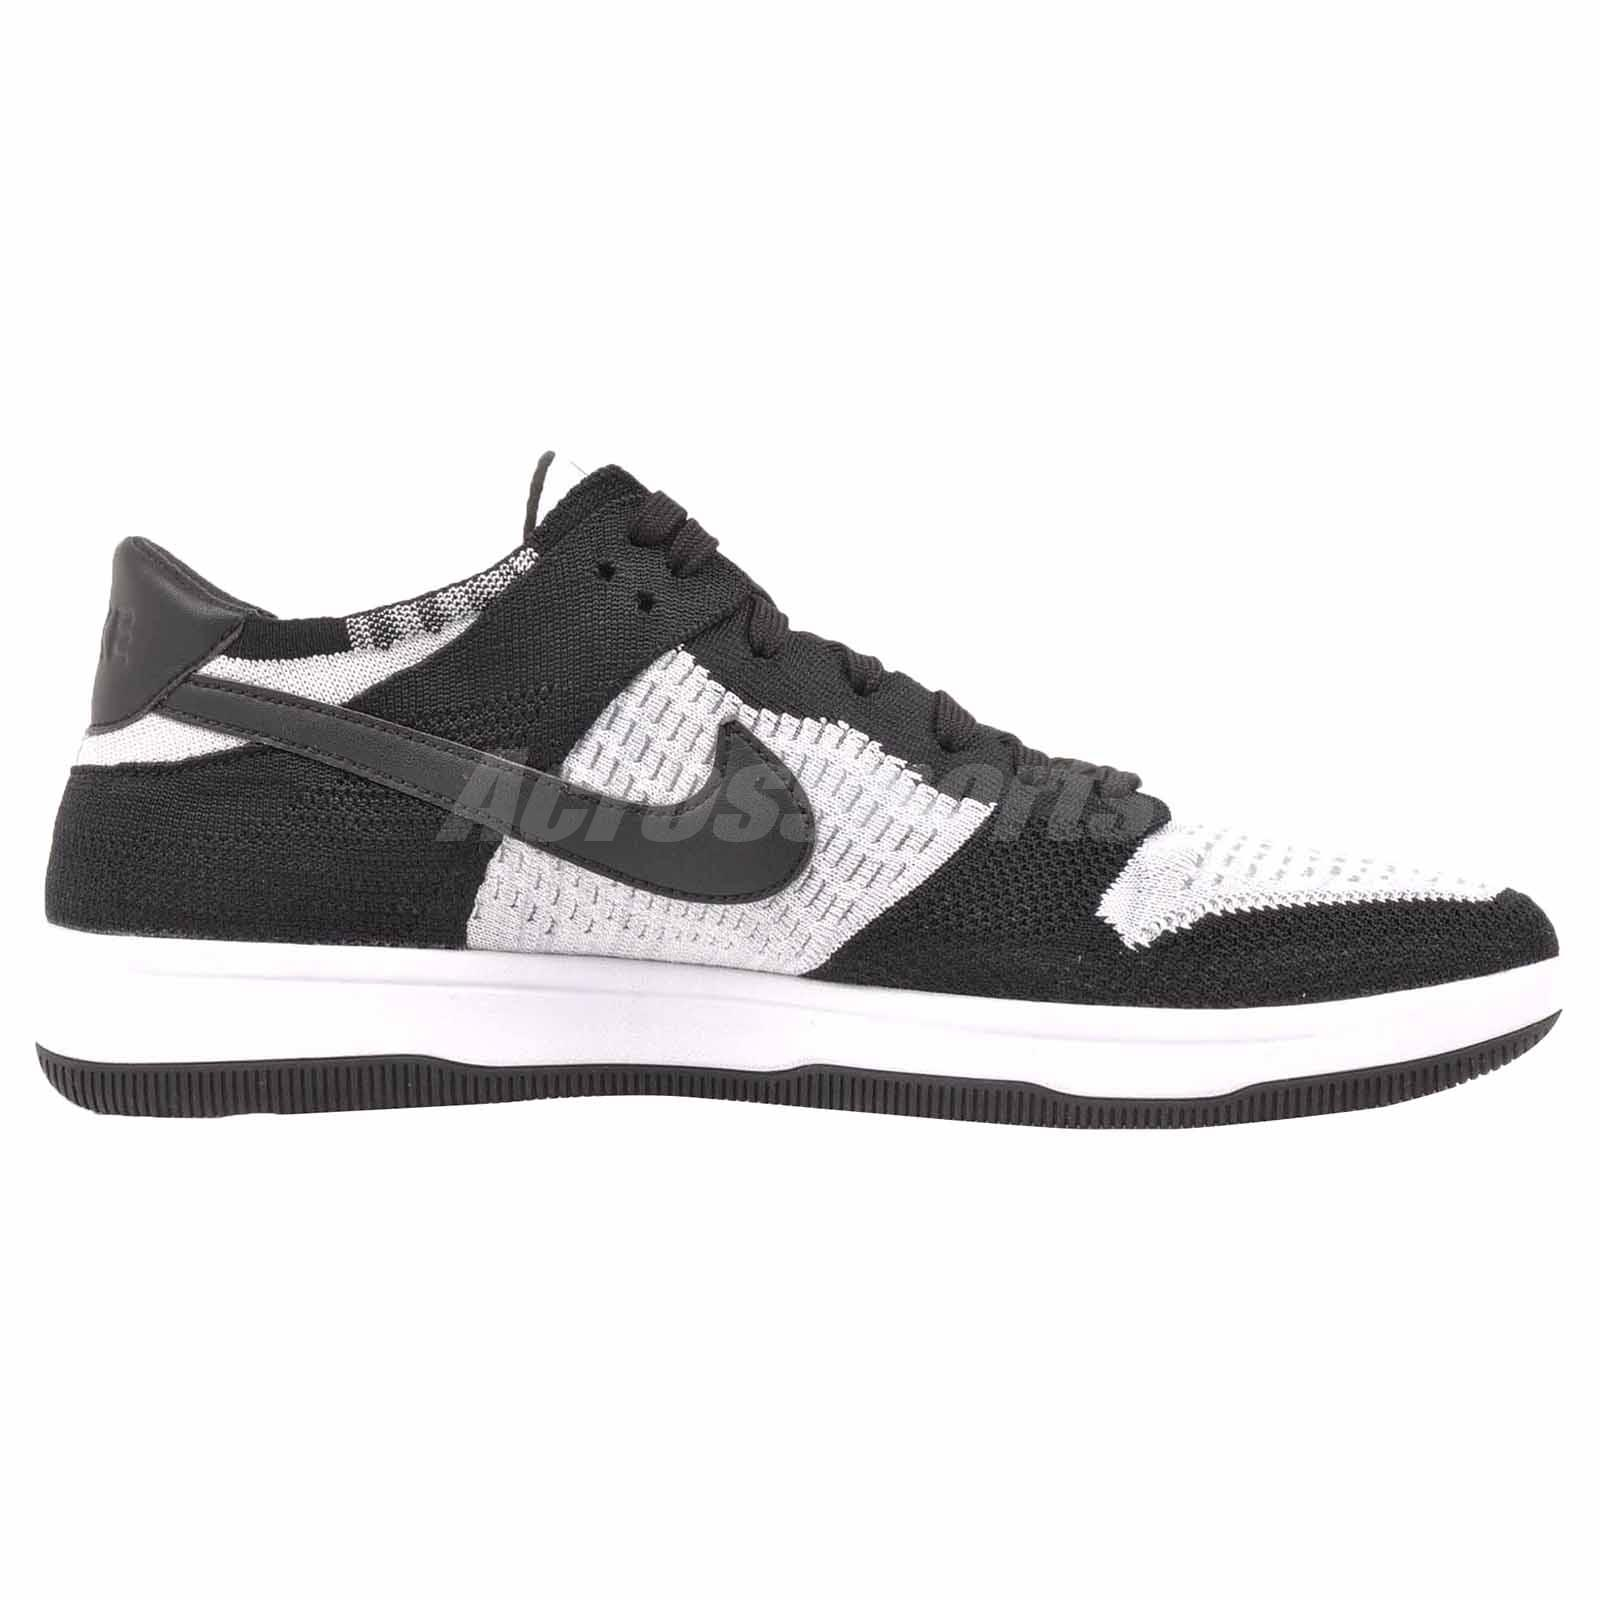 9c13c0636d5b Nike Dunk Flyknit Casual Mens Shoes White Black Grey 917746-100